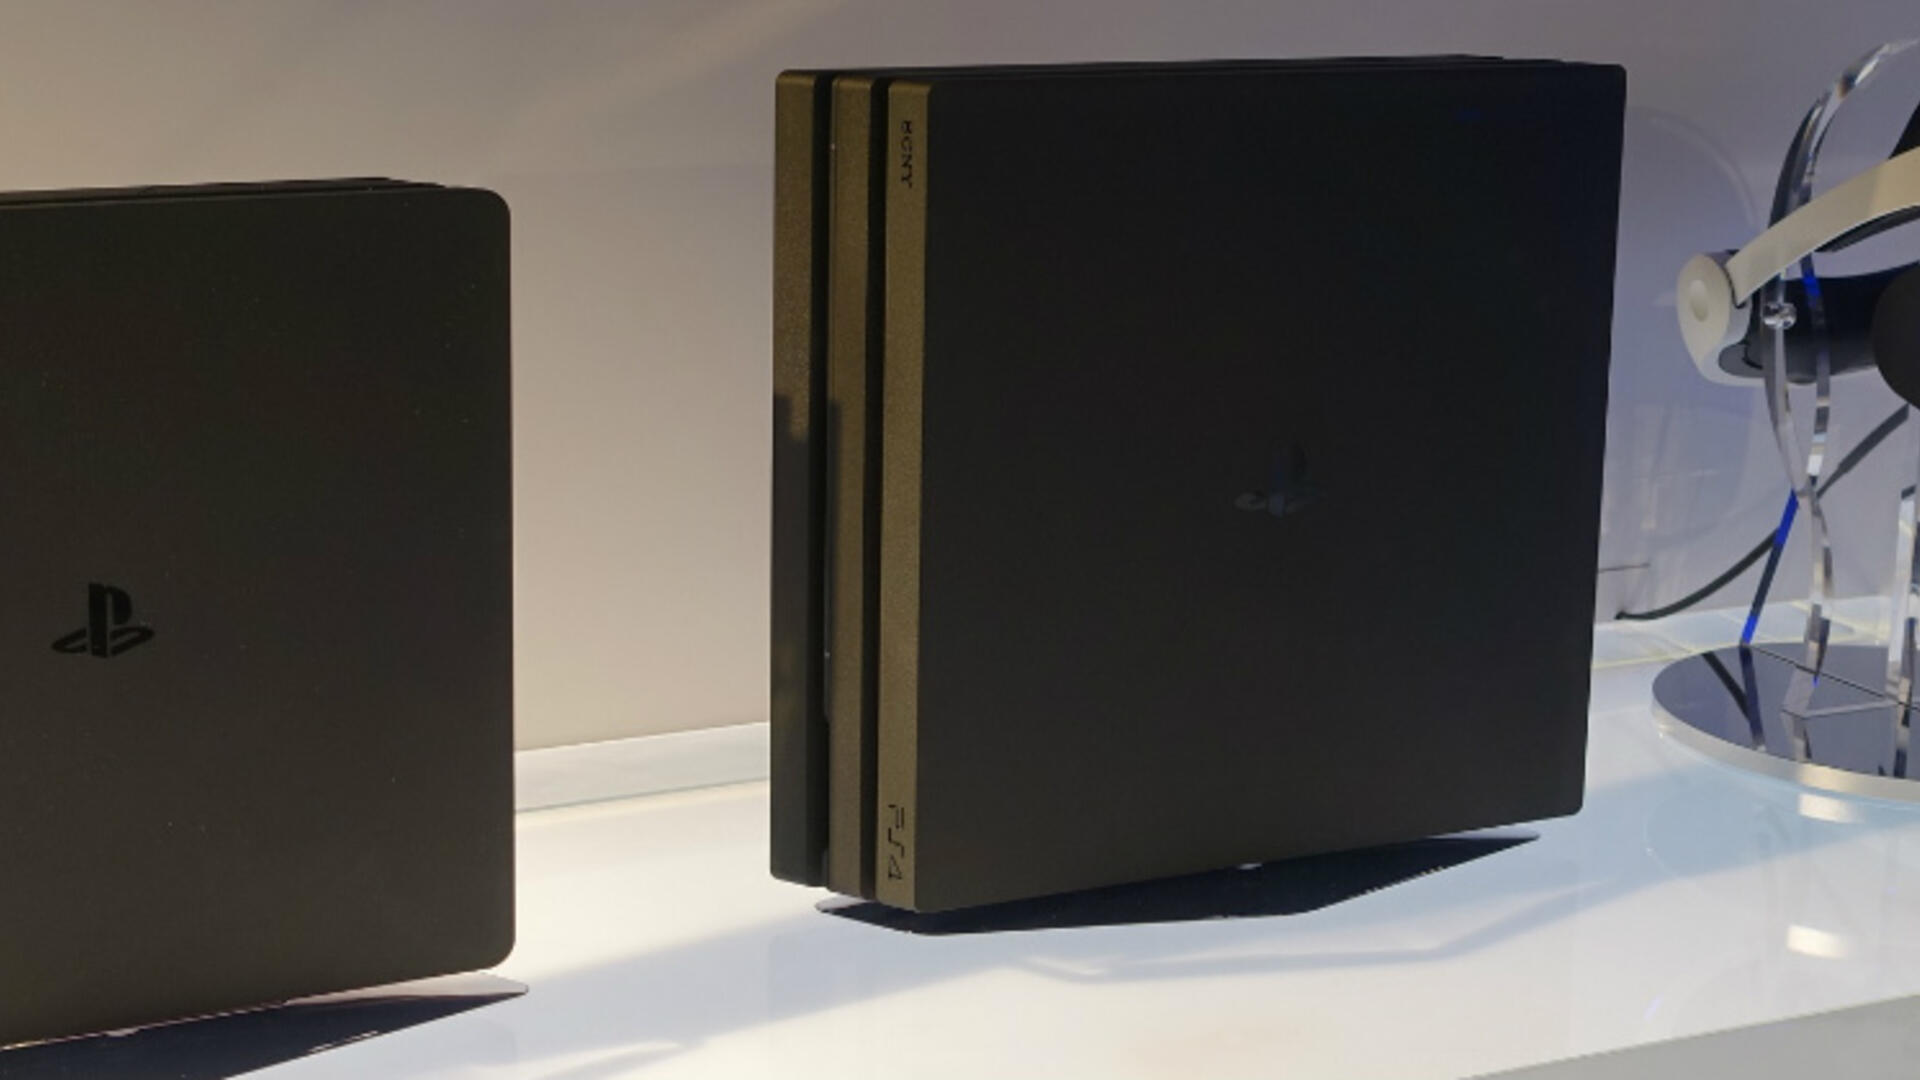 PS4 Pro Is All About The Long Game For Sony